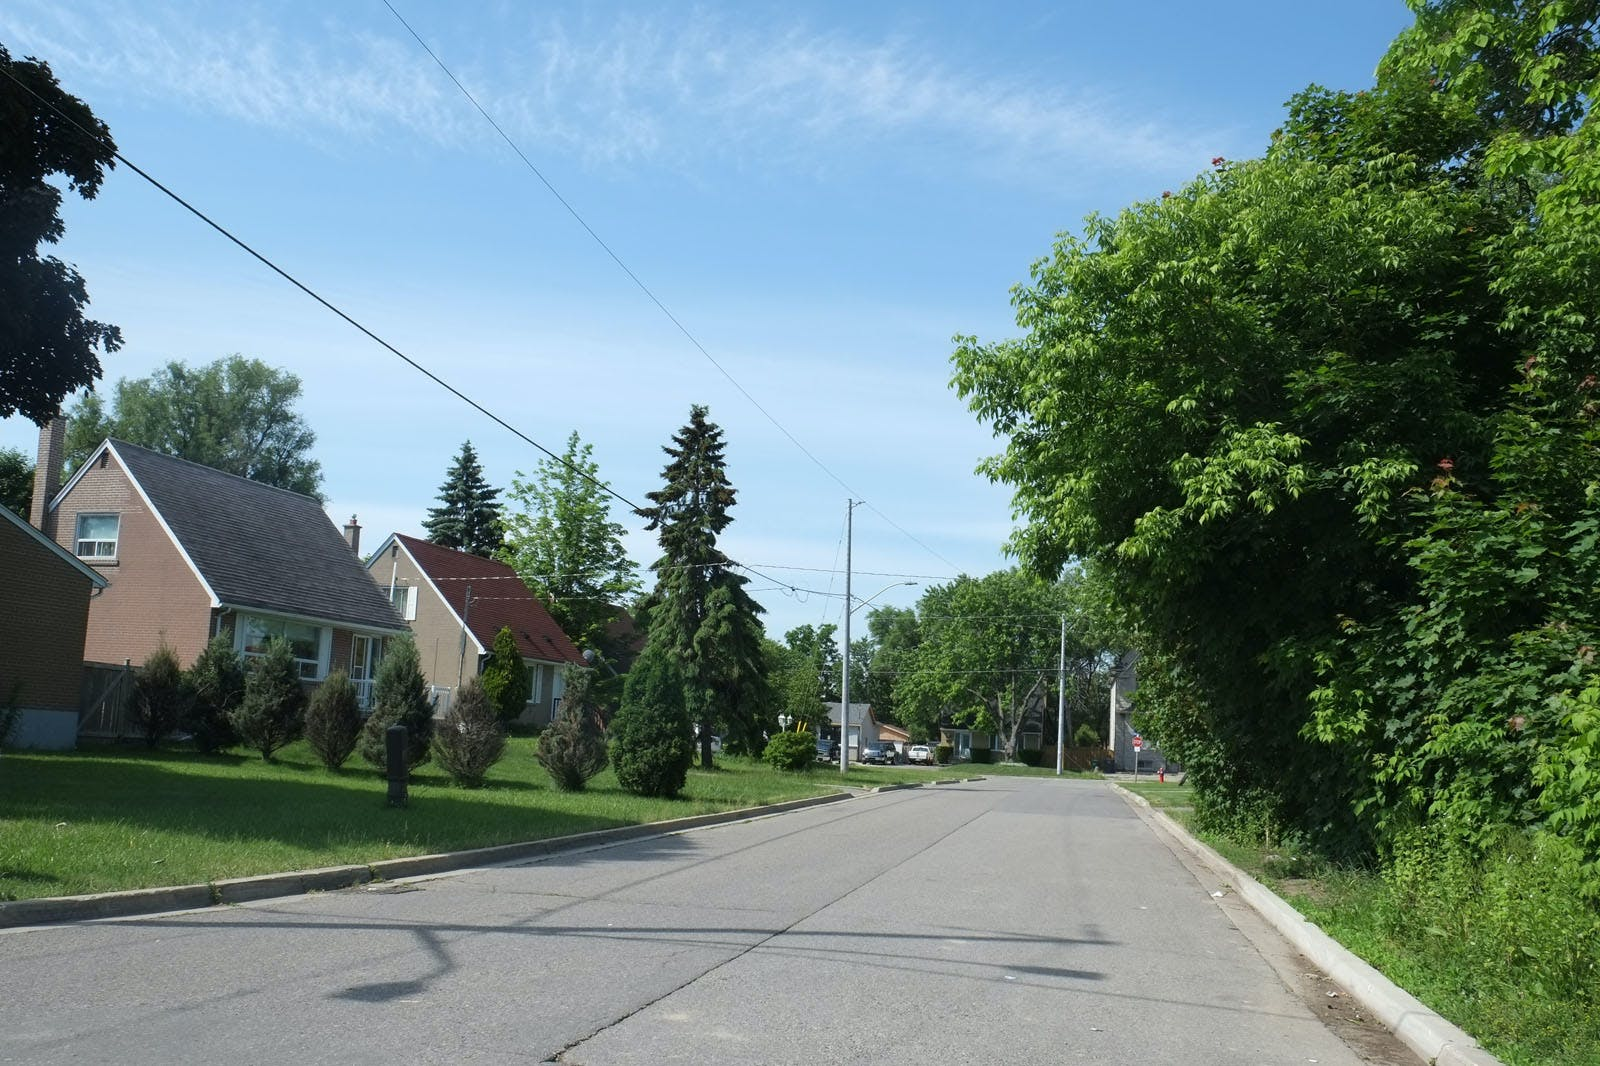 Street view showing a row of Victory housing